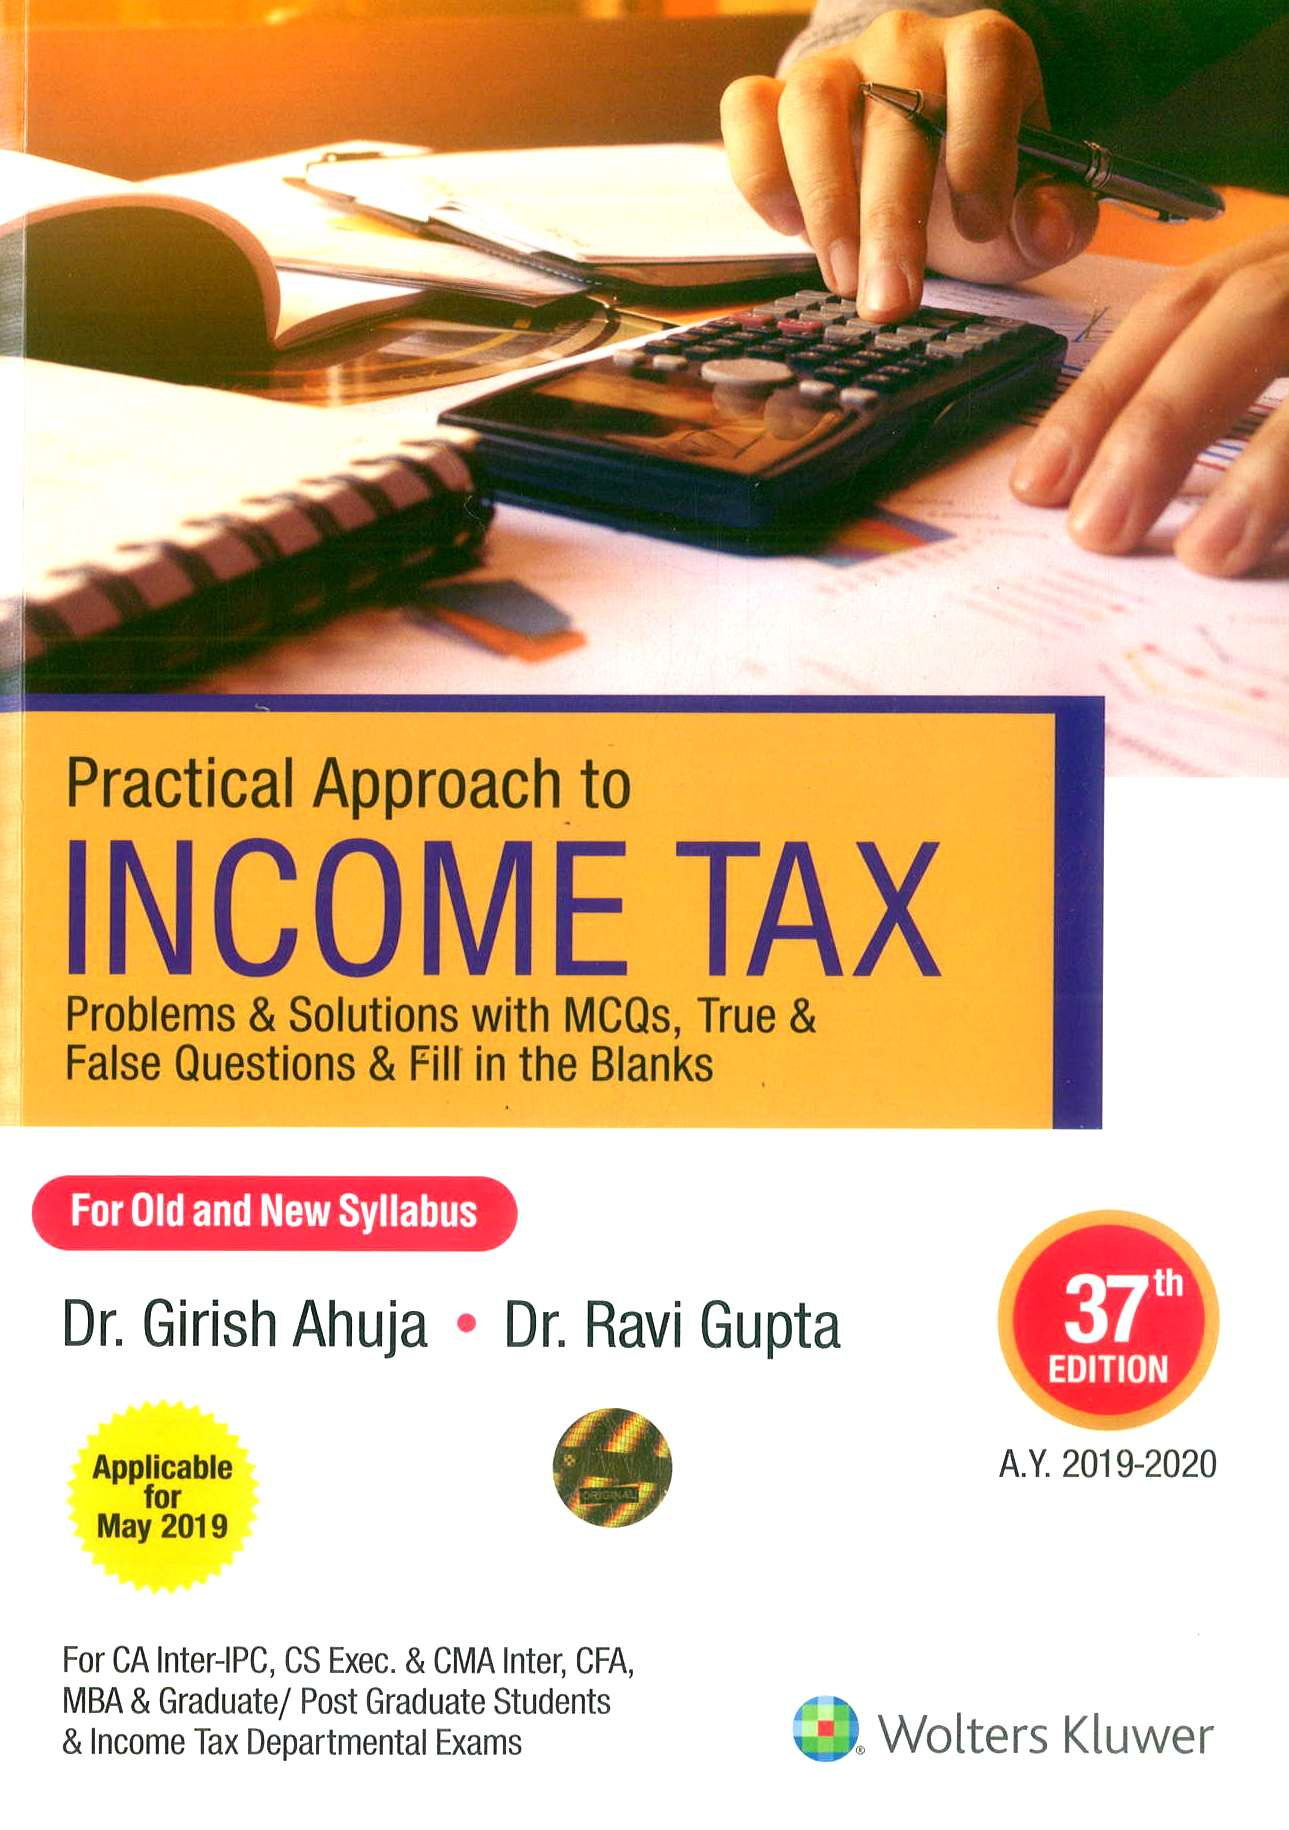 CCH Practical Approach to Income tax (A.Y. 2019-2020) For CA IPCC By Dr Girish Ahuja Dr Ravi Gupta Applicable for 37th edition May 2019 Exam (